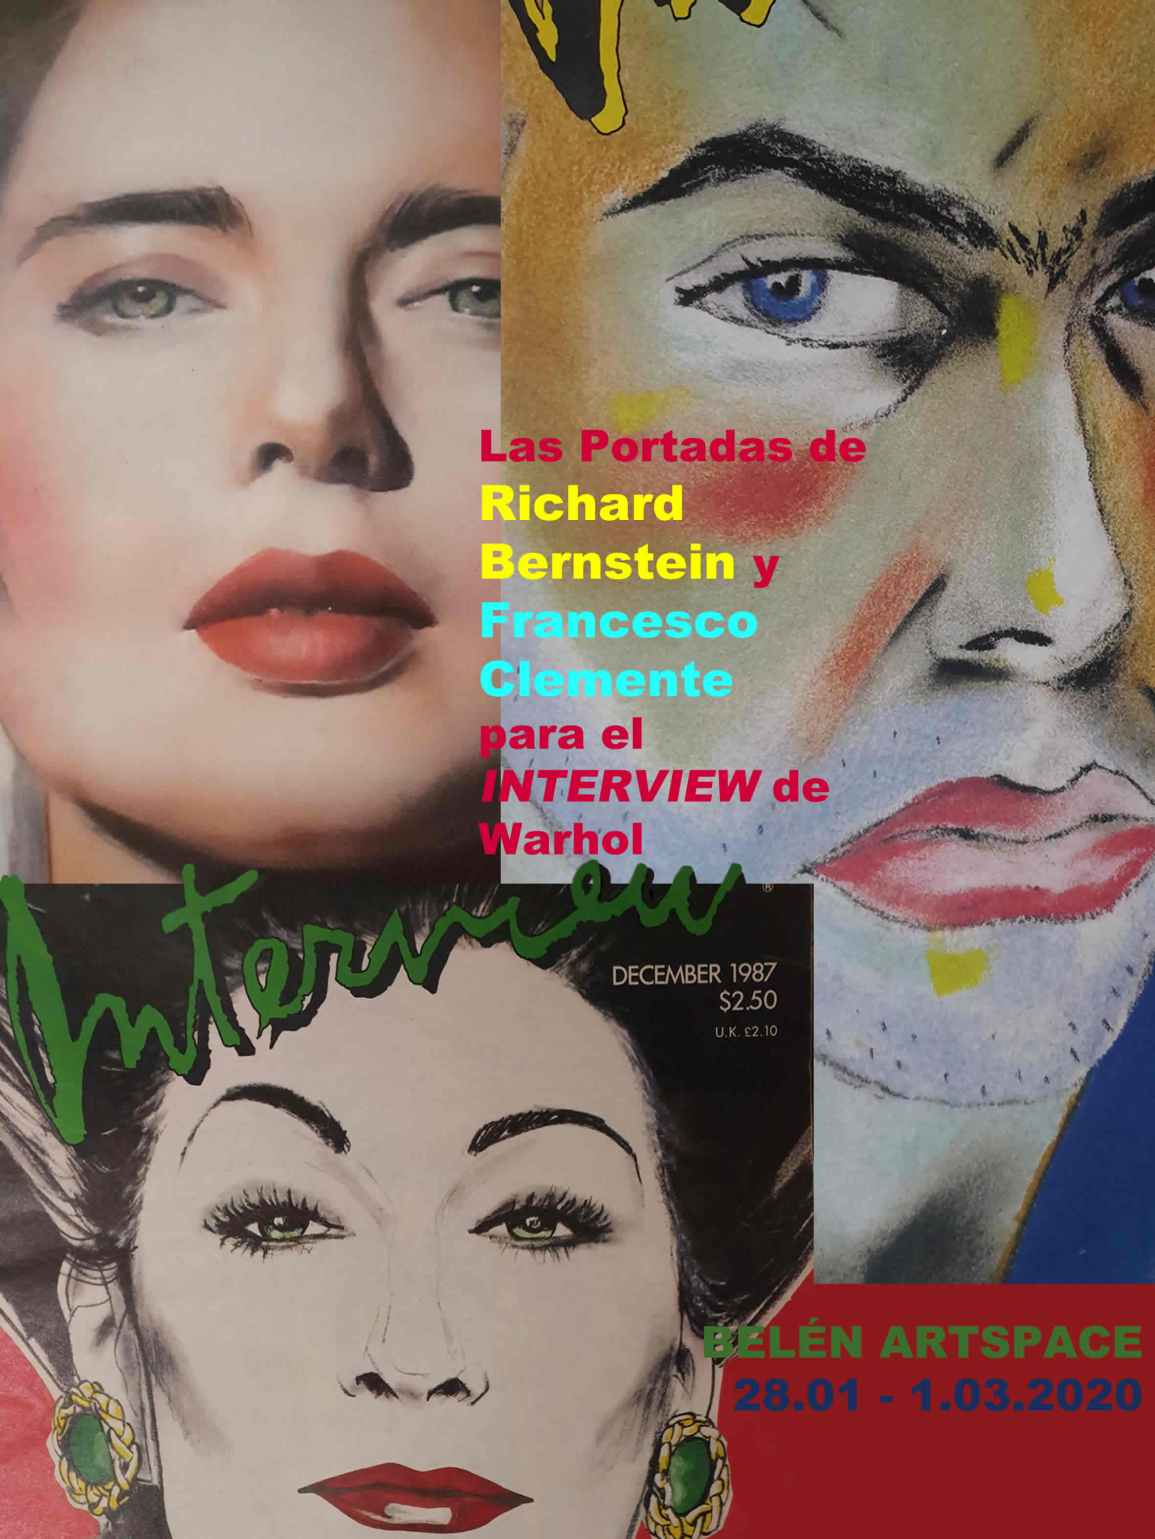 Richard Bernstein,Francesco Clemente,covers,,Andy Warhol´s Interview,Belenartspace,popart,